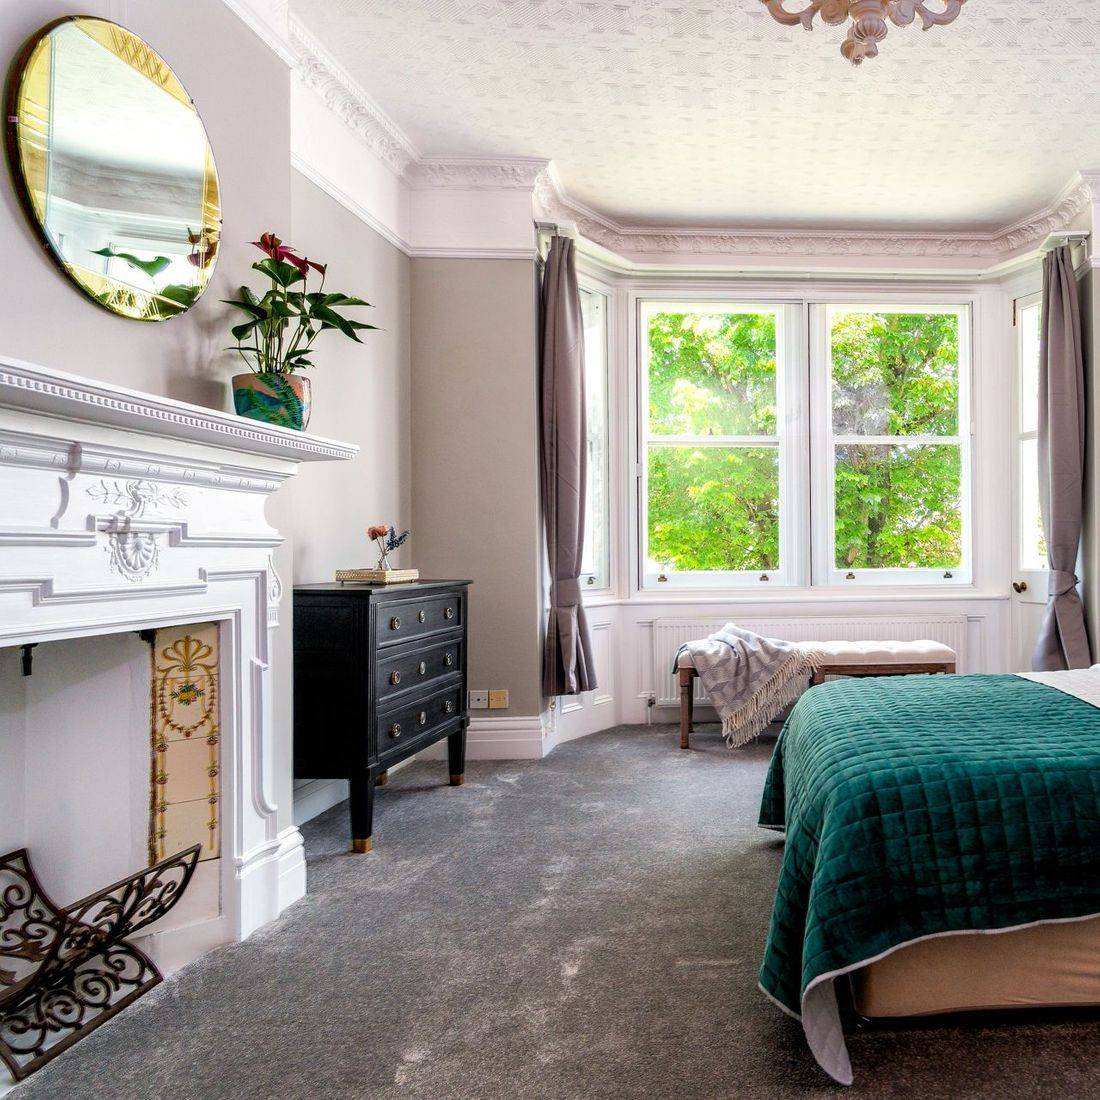 Property Home Staging & Interior Design by Alx Gunn Interiors, Sussex, Surrey, Kent